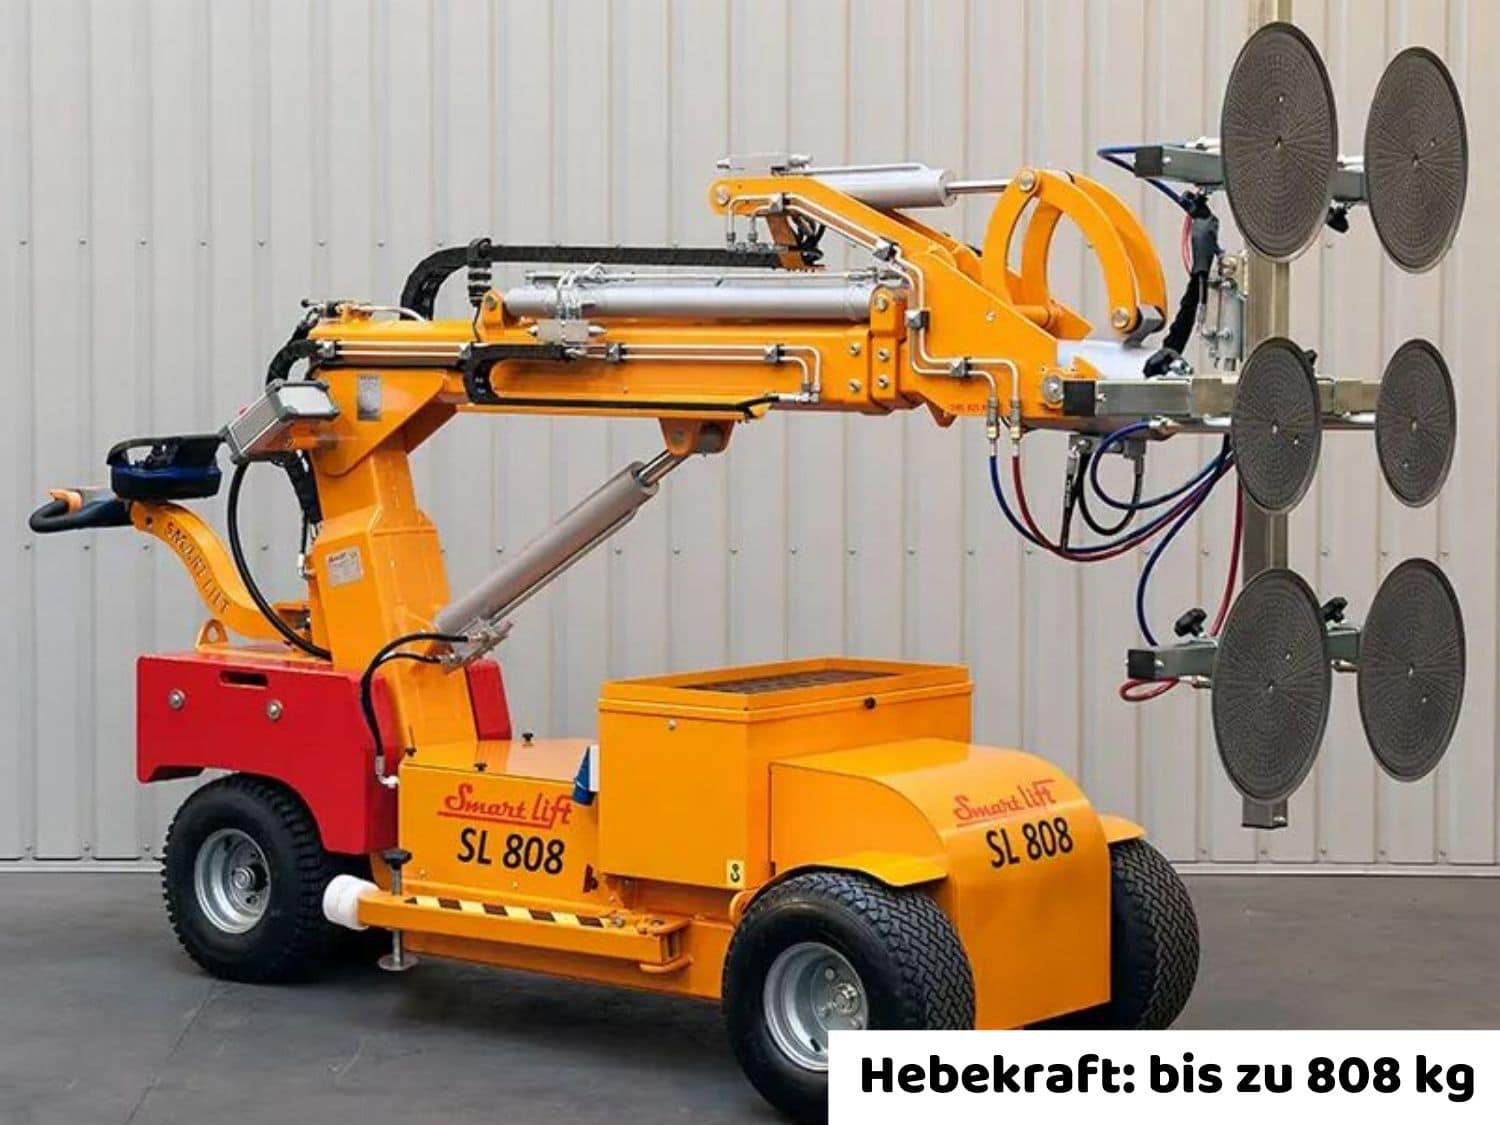 Smartlift-SL808-Outdoor-Glaslift